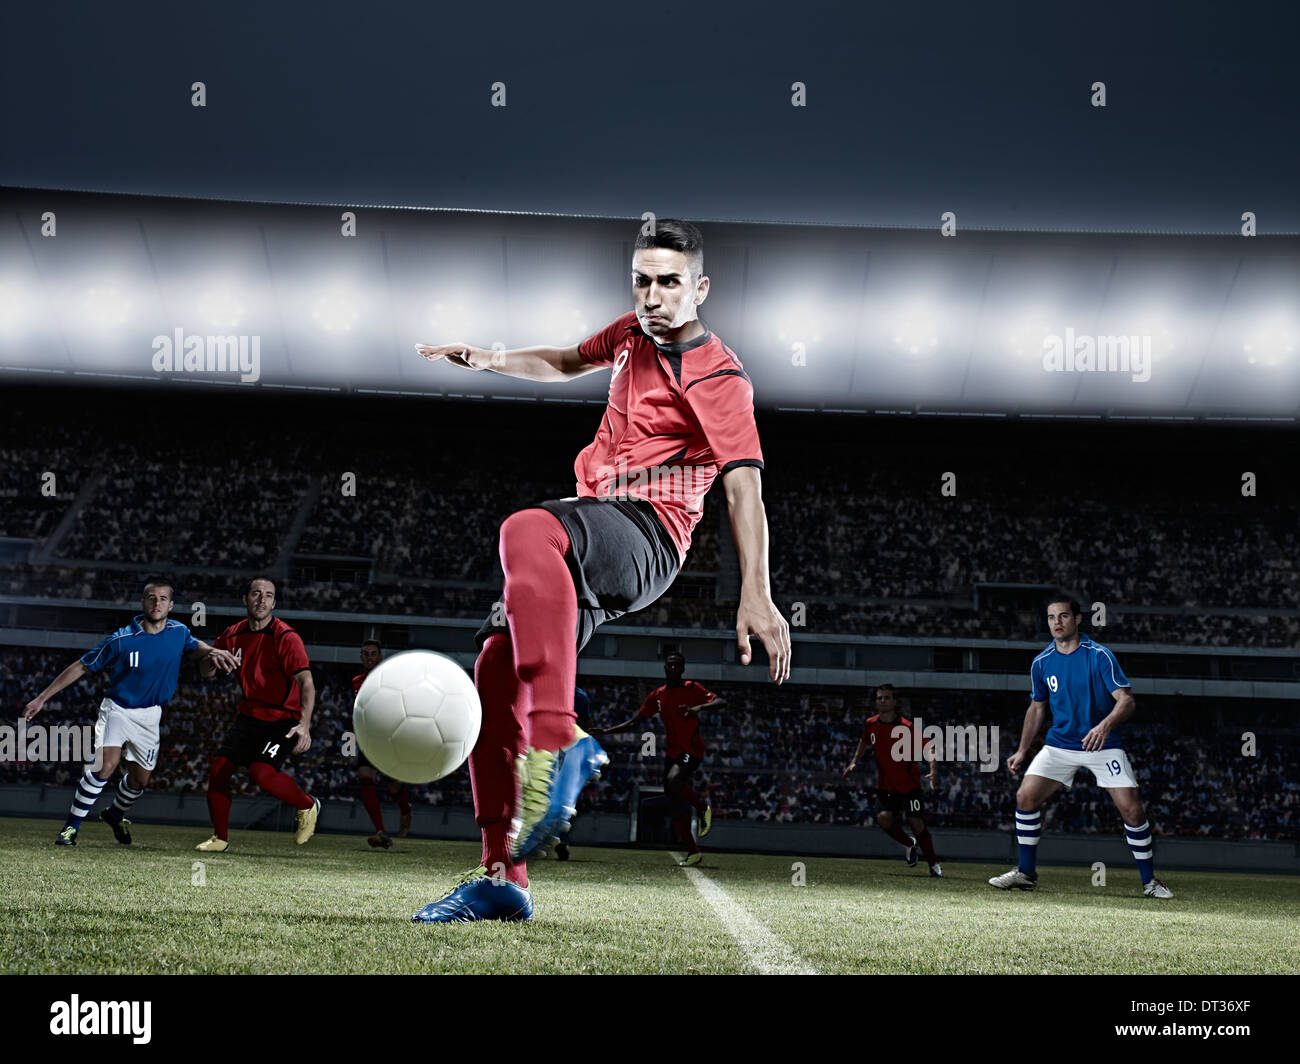 Soccer player kicking ball on field - Stock Image